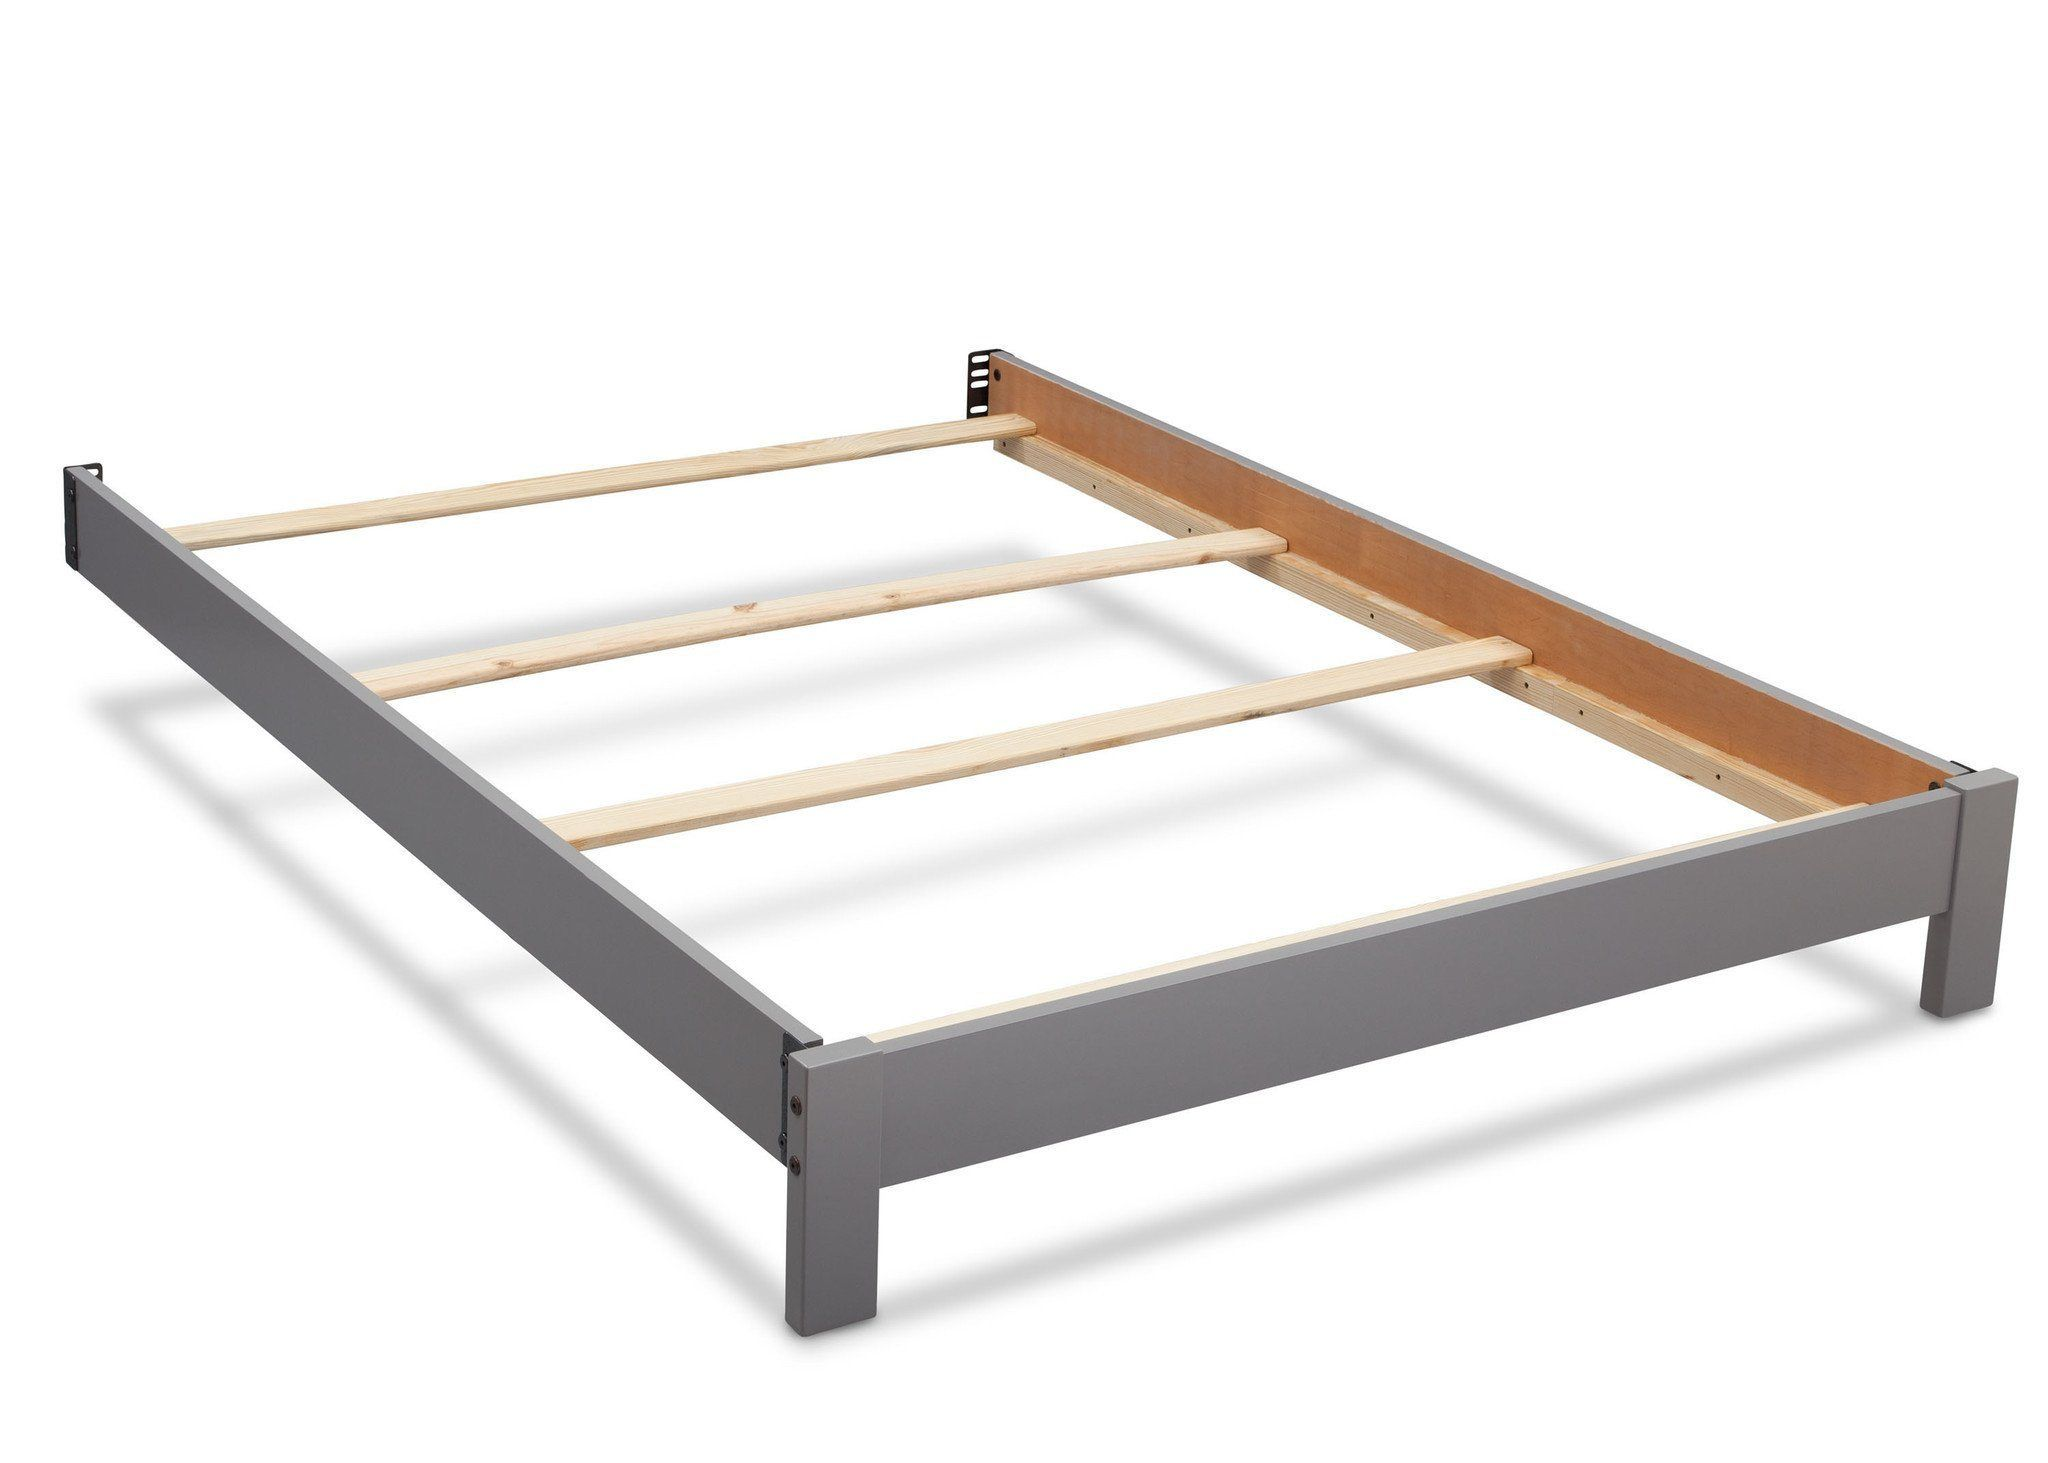 Full Size Platform Bed Kit (for 4-in-1 Cribs) | Products | Pinterest